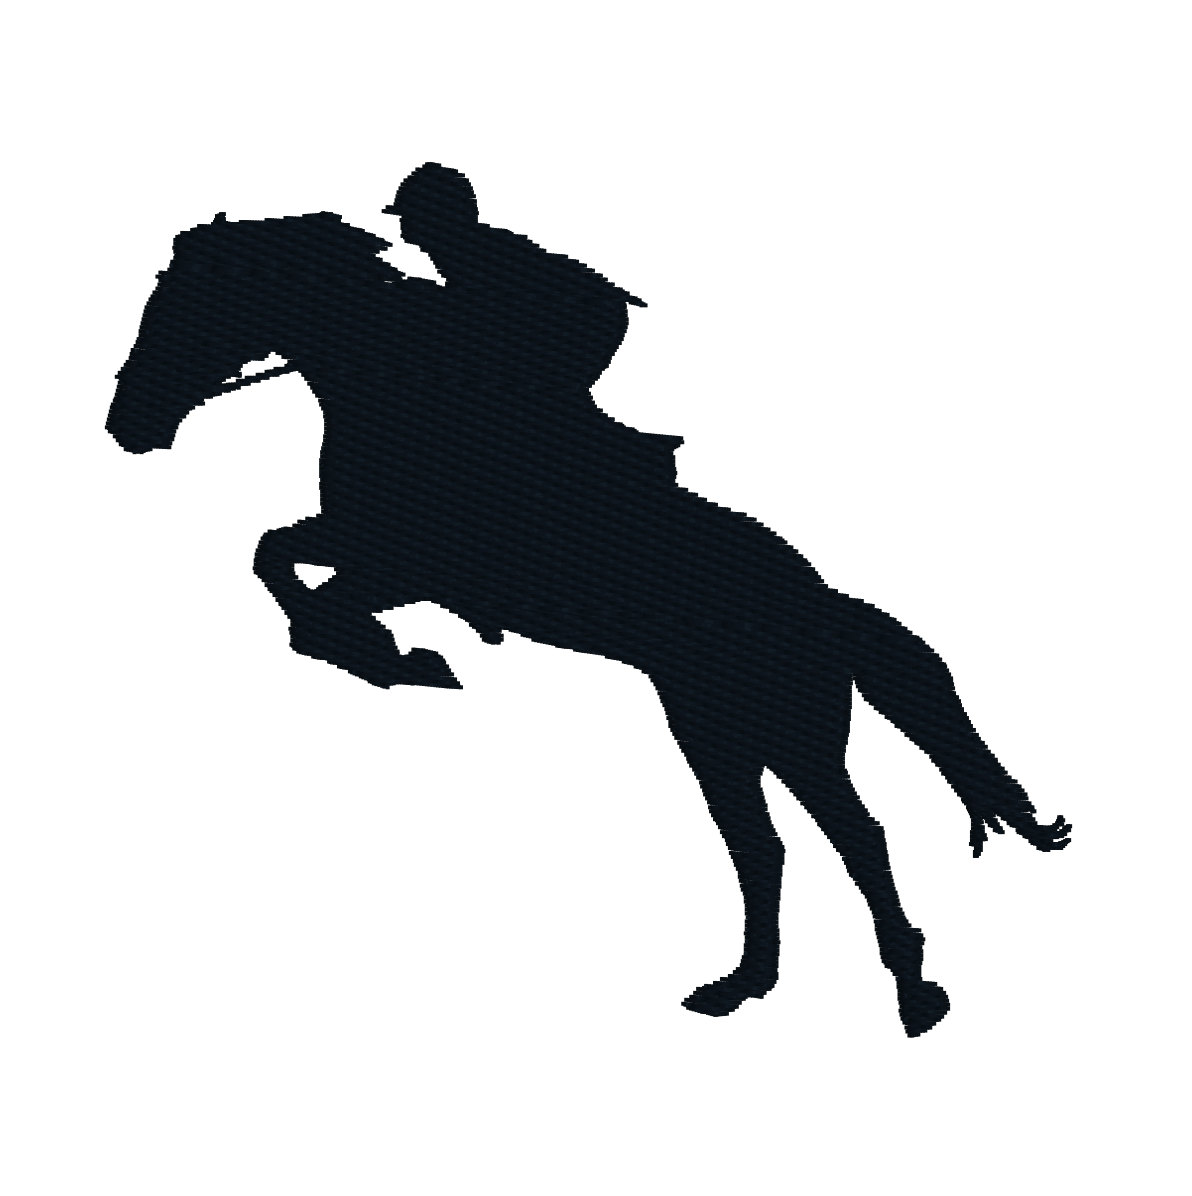 jumping horse silhouette clip art at getdrawings com free for rh getdrawings com  horse jumping fence clipart